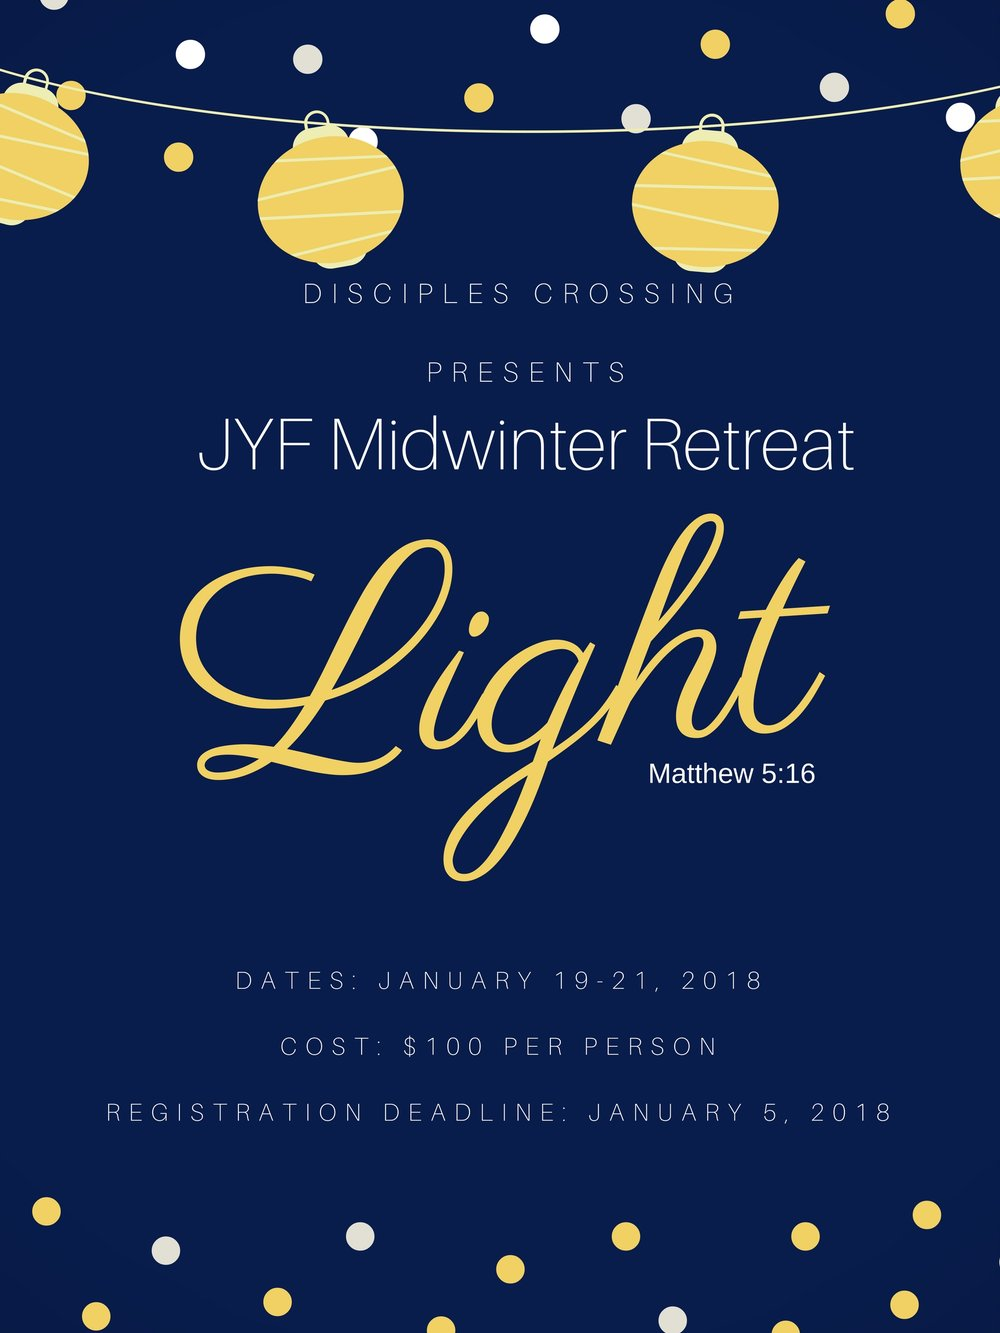 JYF Midwinter Retreat.jpg